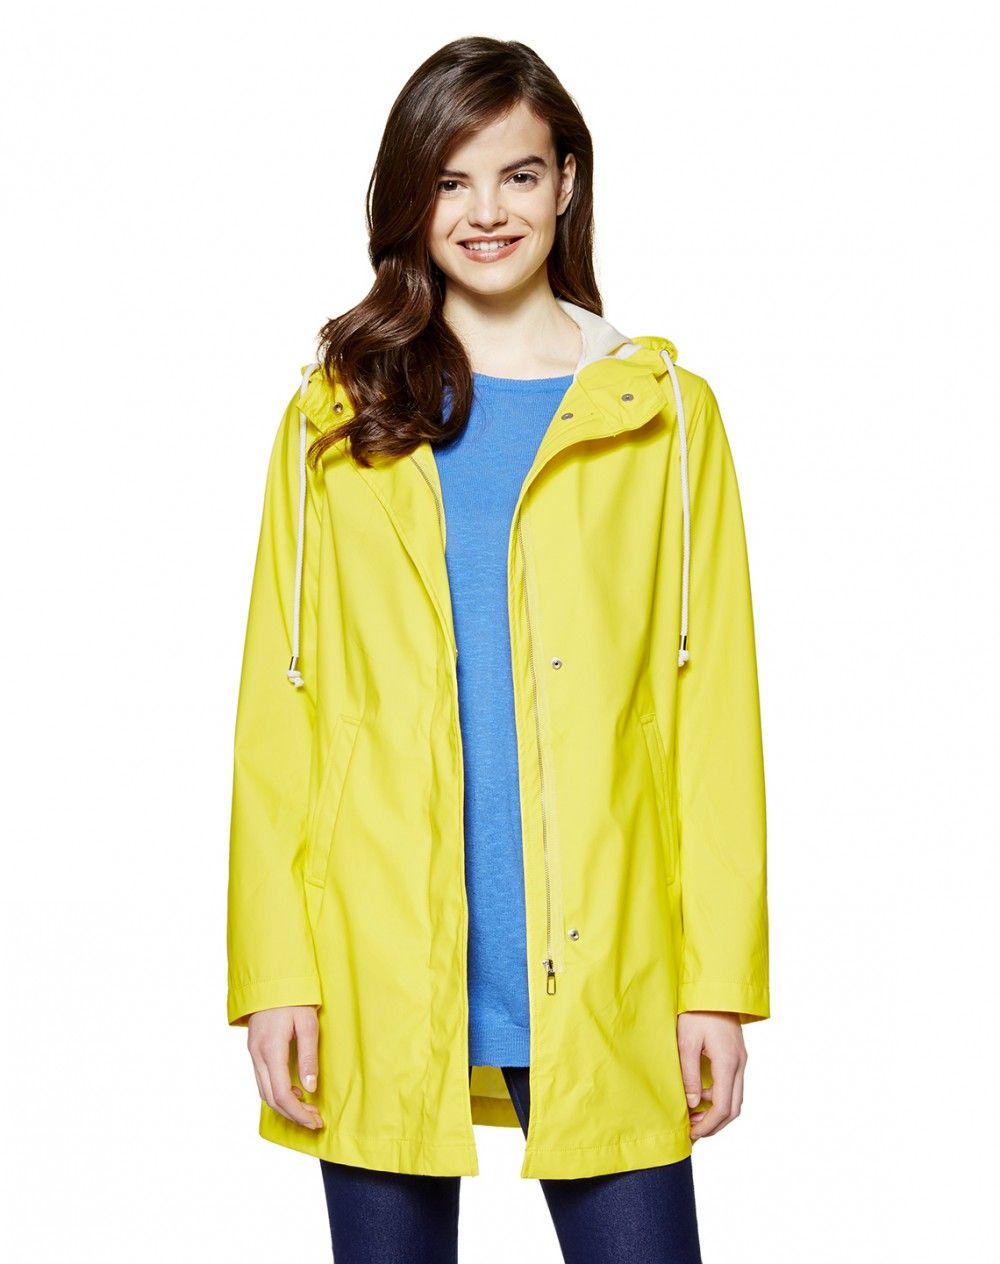 d4e877e57 Lightweight waterproof waxed jacket, hood with clashing color non-removable  drawstring. Long sleeves, two welt pockets at front, hidden double closure  with ...